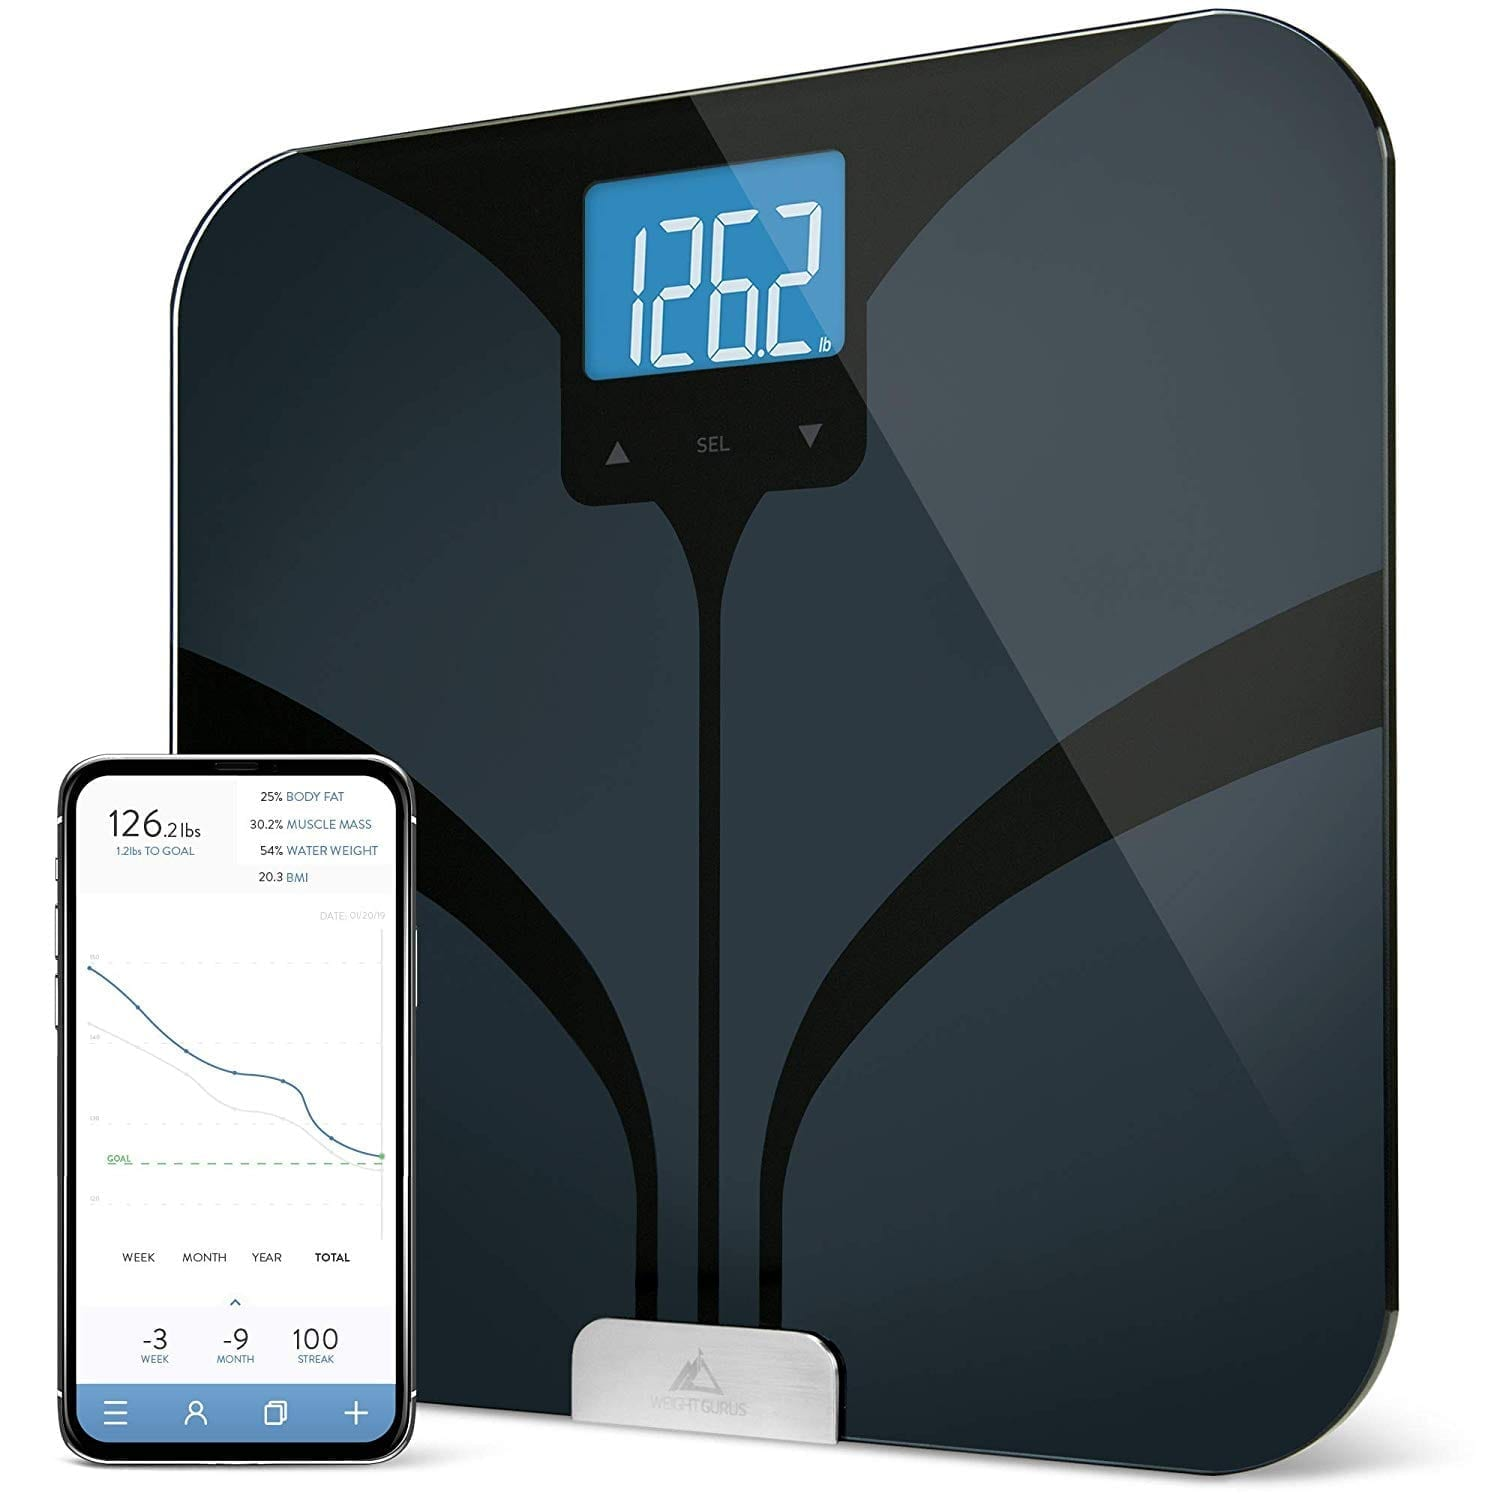 Greater Goods Bluetooth Smart Body Fat and Weight Scale